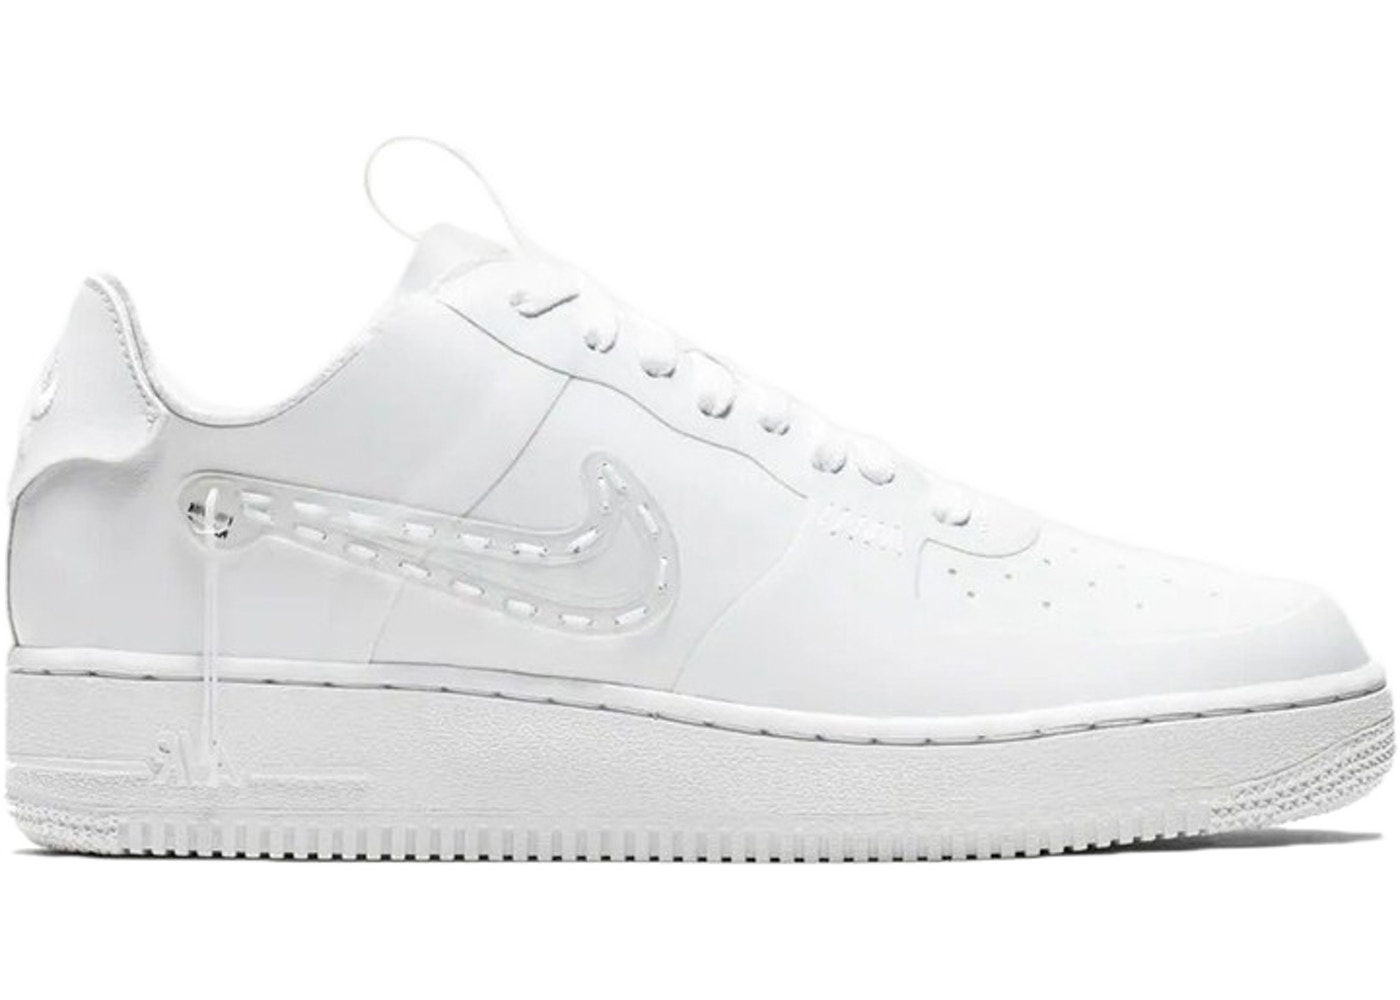 ナイキ NIKE エア スニーカー 【 AIR FORCE 1 LOW NOISE CANCELLING PACK ODELL BECKHAM JR WHITE 】 メンズ